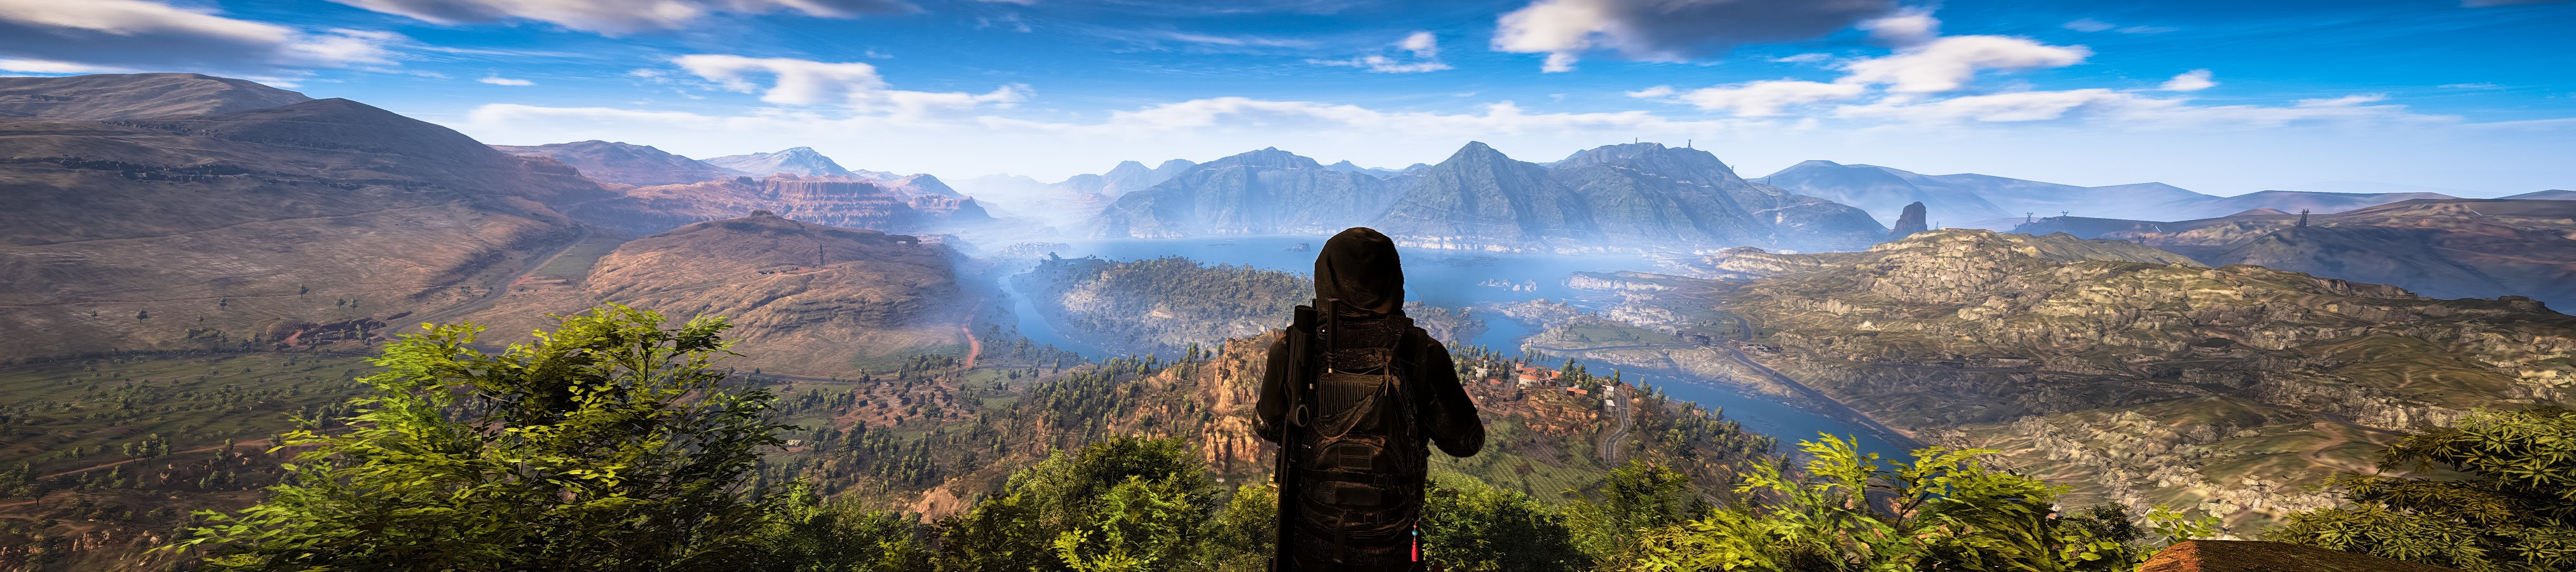 Tom Clancys Ghost Recon Wildlands 4k Ultra Hd Wallpaper High